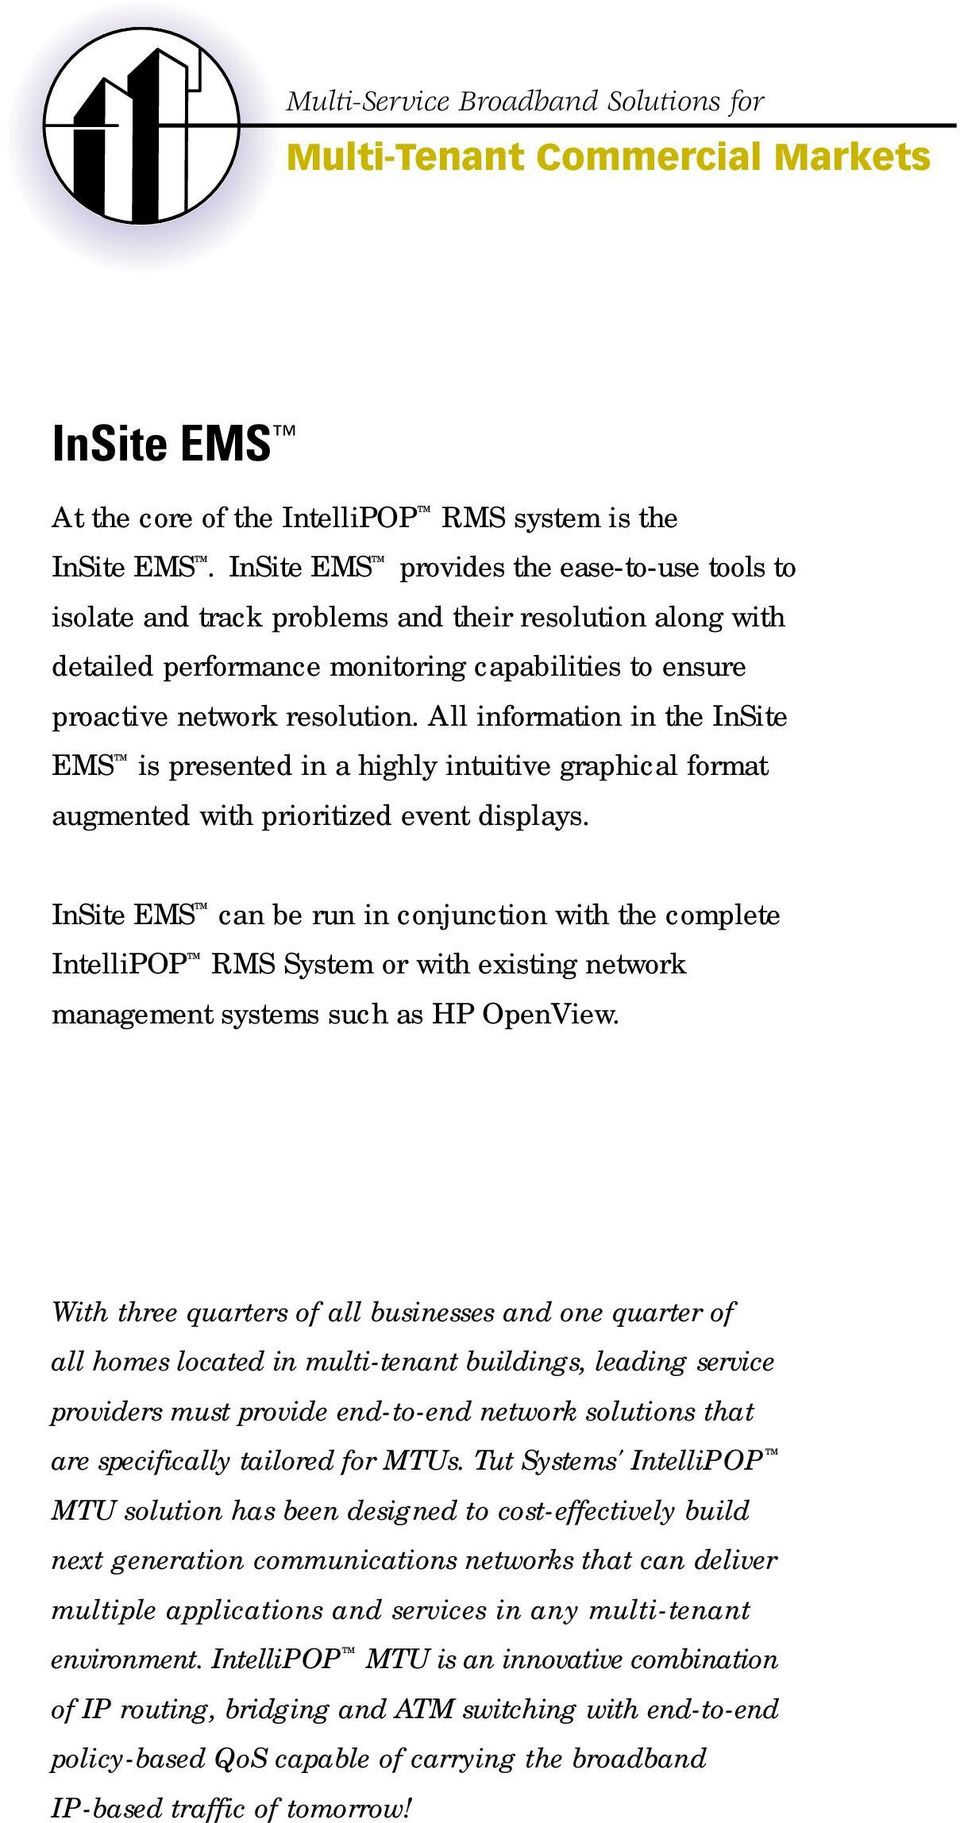 All information in the InSite EMS is presented in a highly intuitive graphical format augmented with prioritized event displays.